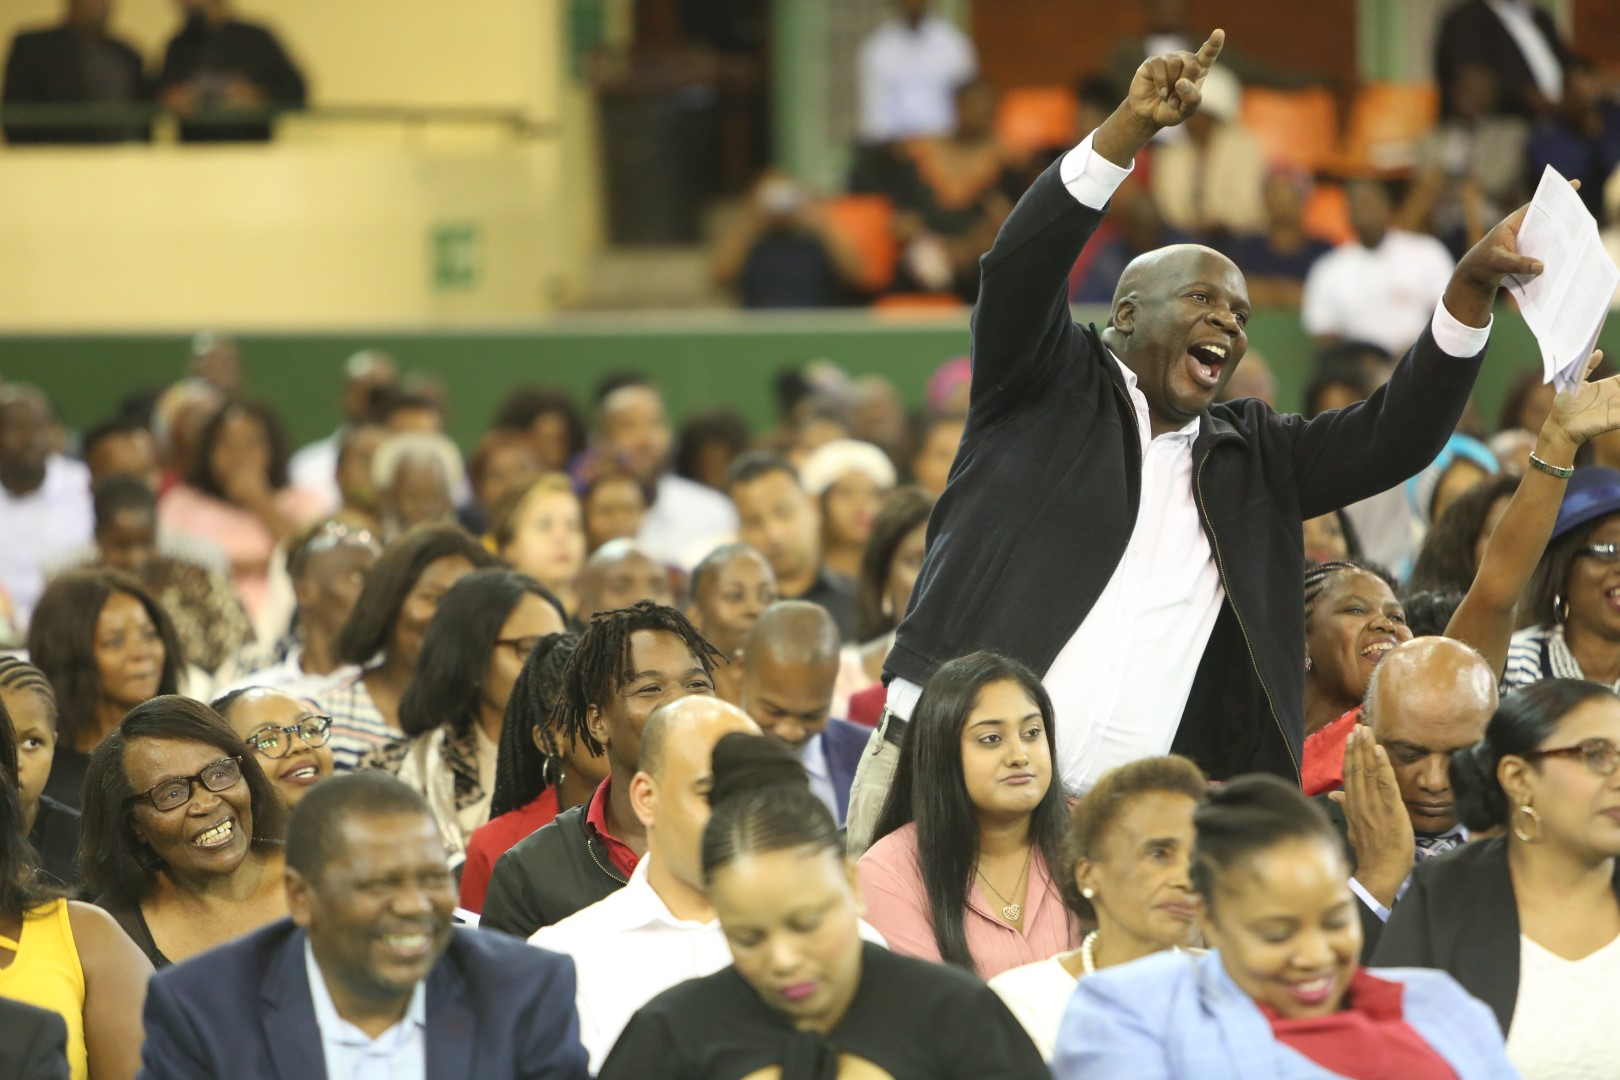 An excited father during the UKZN graduation